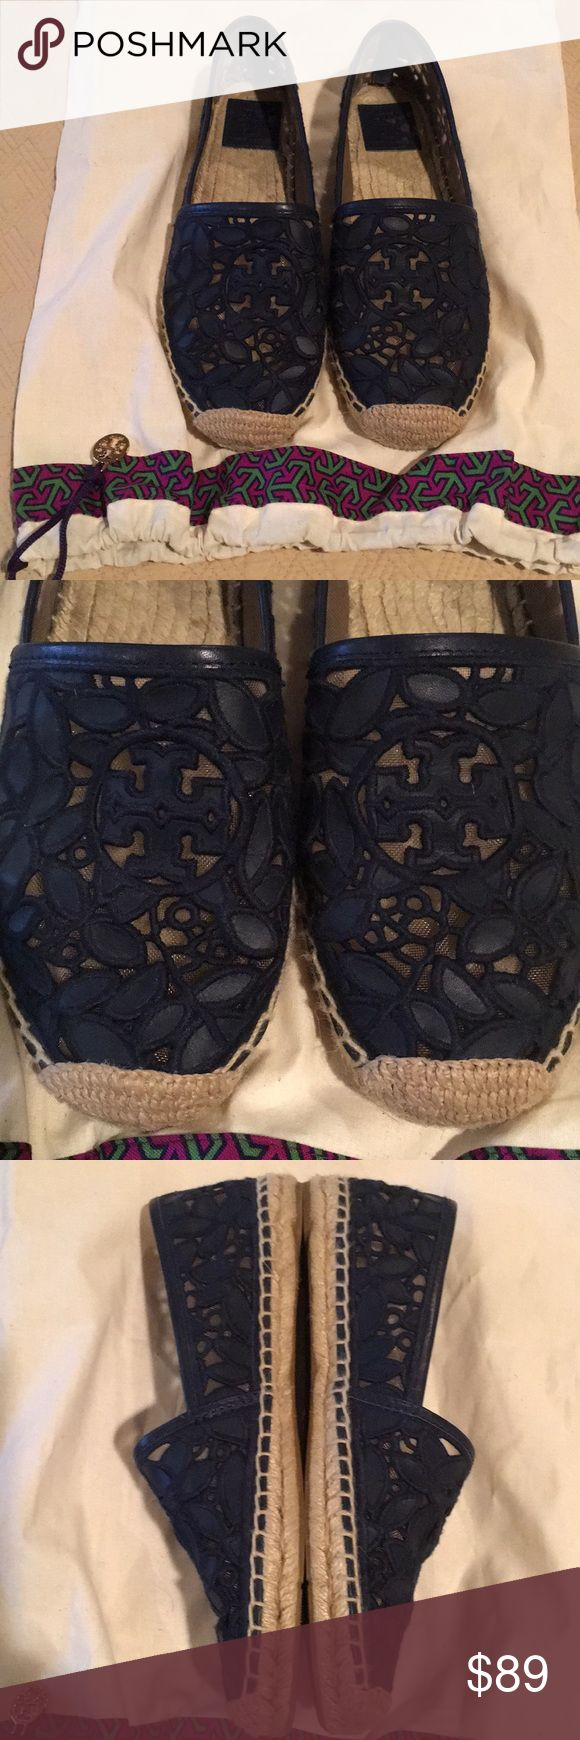 Tory Burch Navy Espadrilles Size 9.5 **worn once** These are beautiful Tory Burch Navy Espadrilles in a size 9.5. I only got to wear them once since I got them so they need to find a better home. They come with a dust bag. Tory Burch Shoes Espadrilles